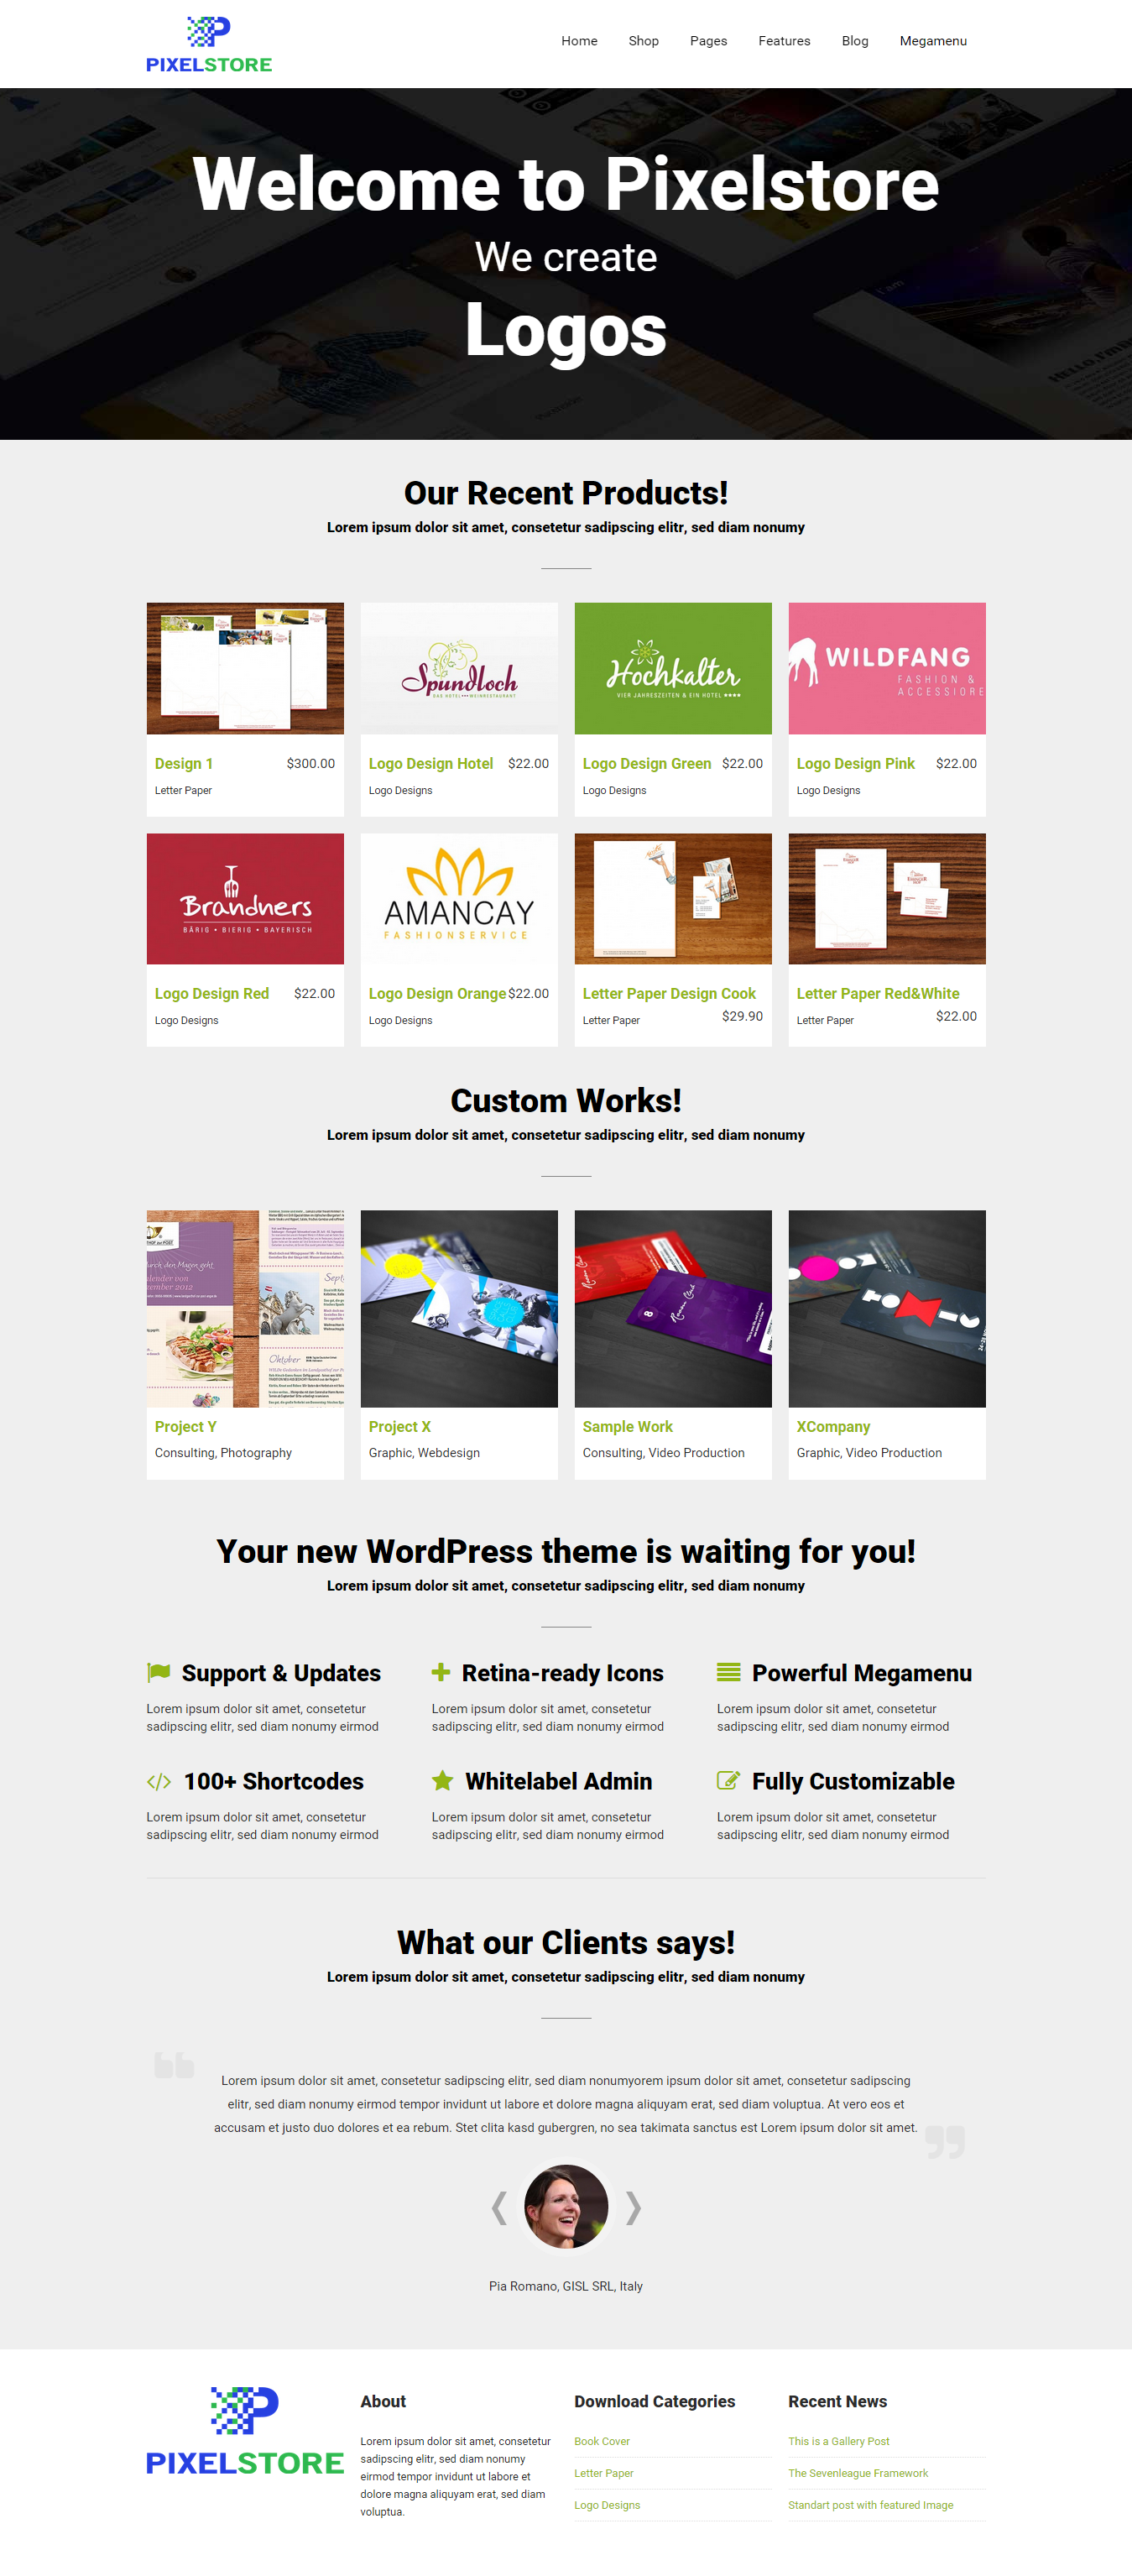 Pixelstore - a new WordPress Theme for digital downloads. Want to ...